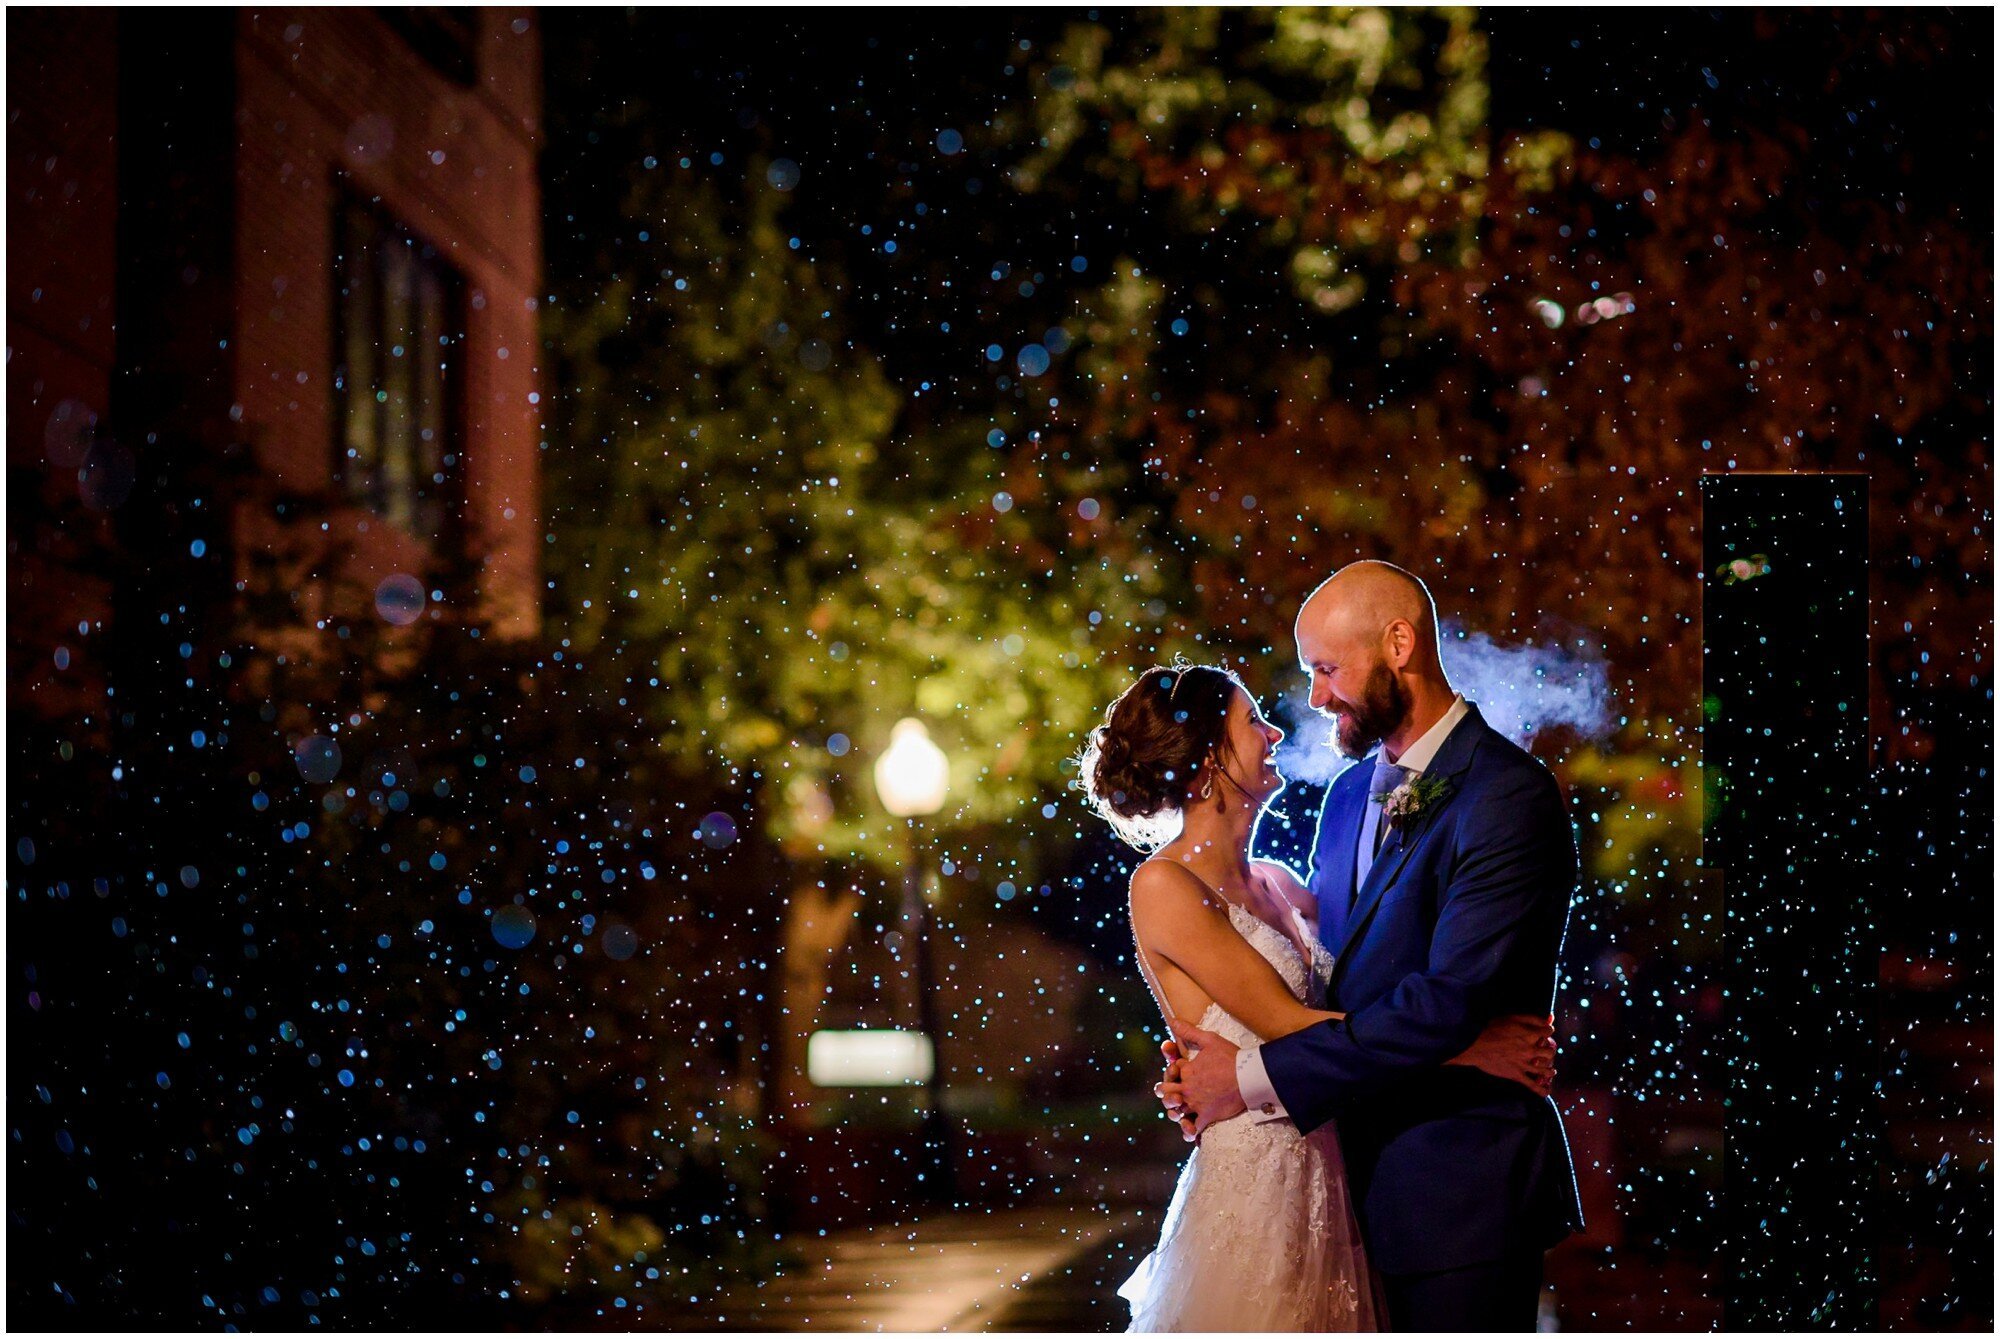 Wedding couple embraces in the snow after their wedding in Boulder, Colorado